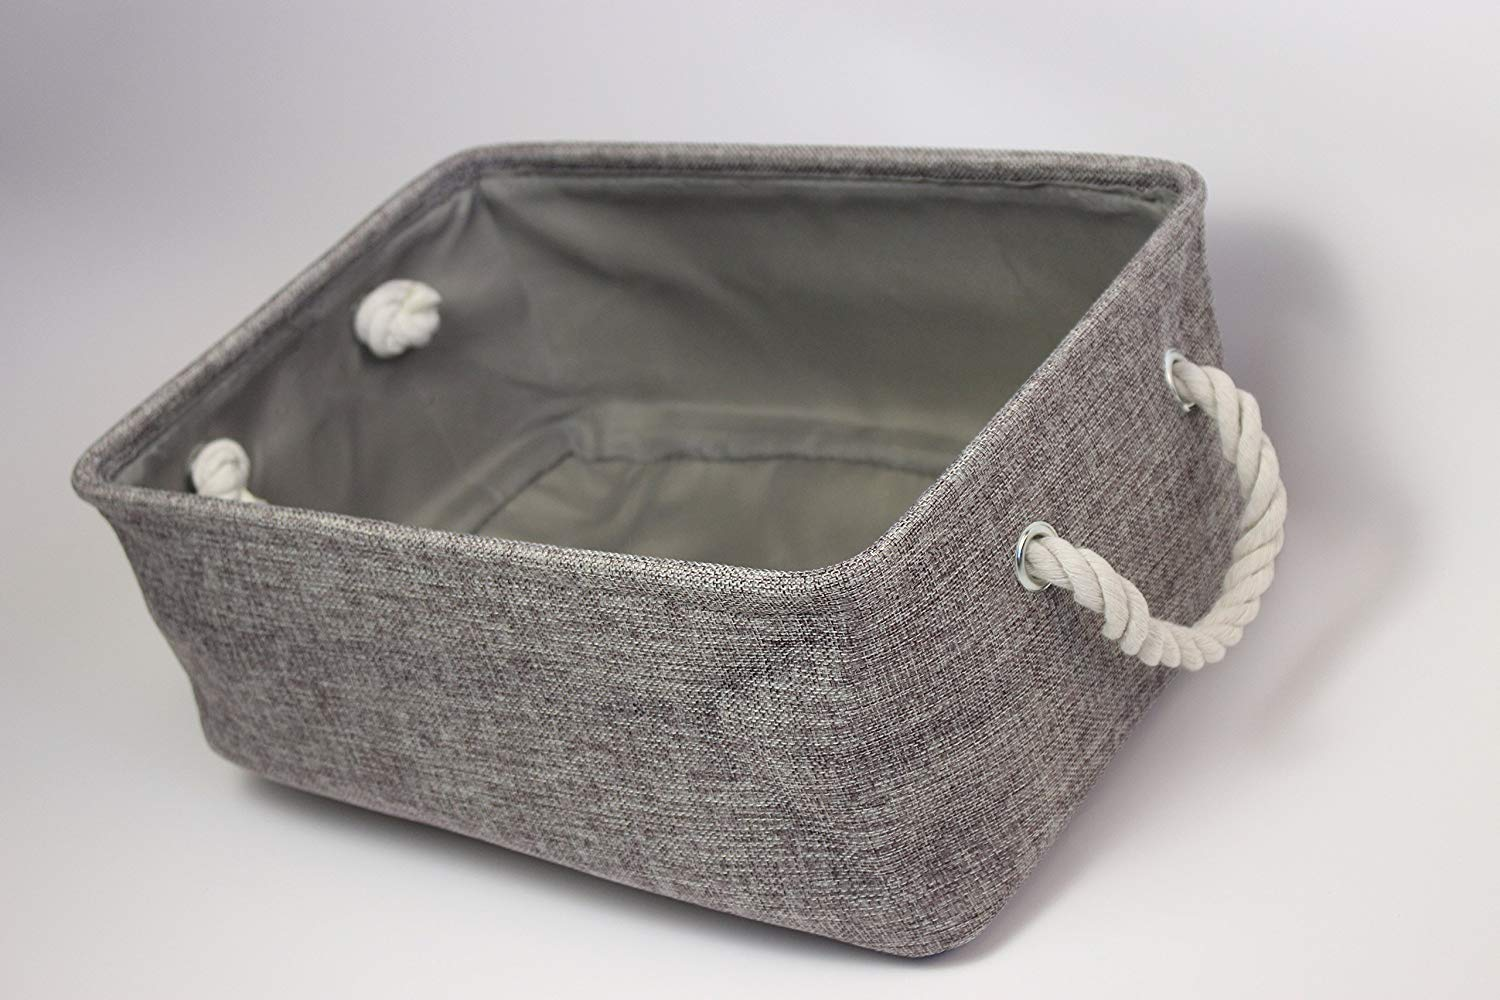 Foldable Storage Baskets Canvas Storage Basket With Handles, For Home Office Storage Bins (Gray)(L×W×H:36×27×17cm) (Large)